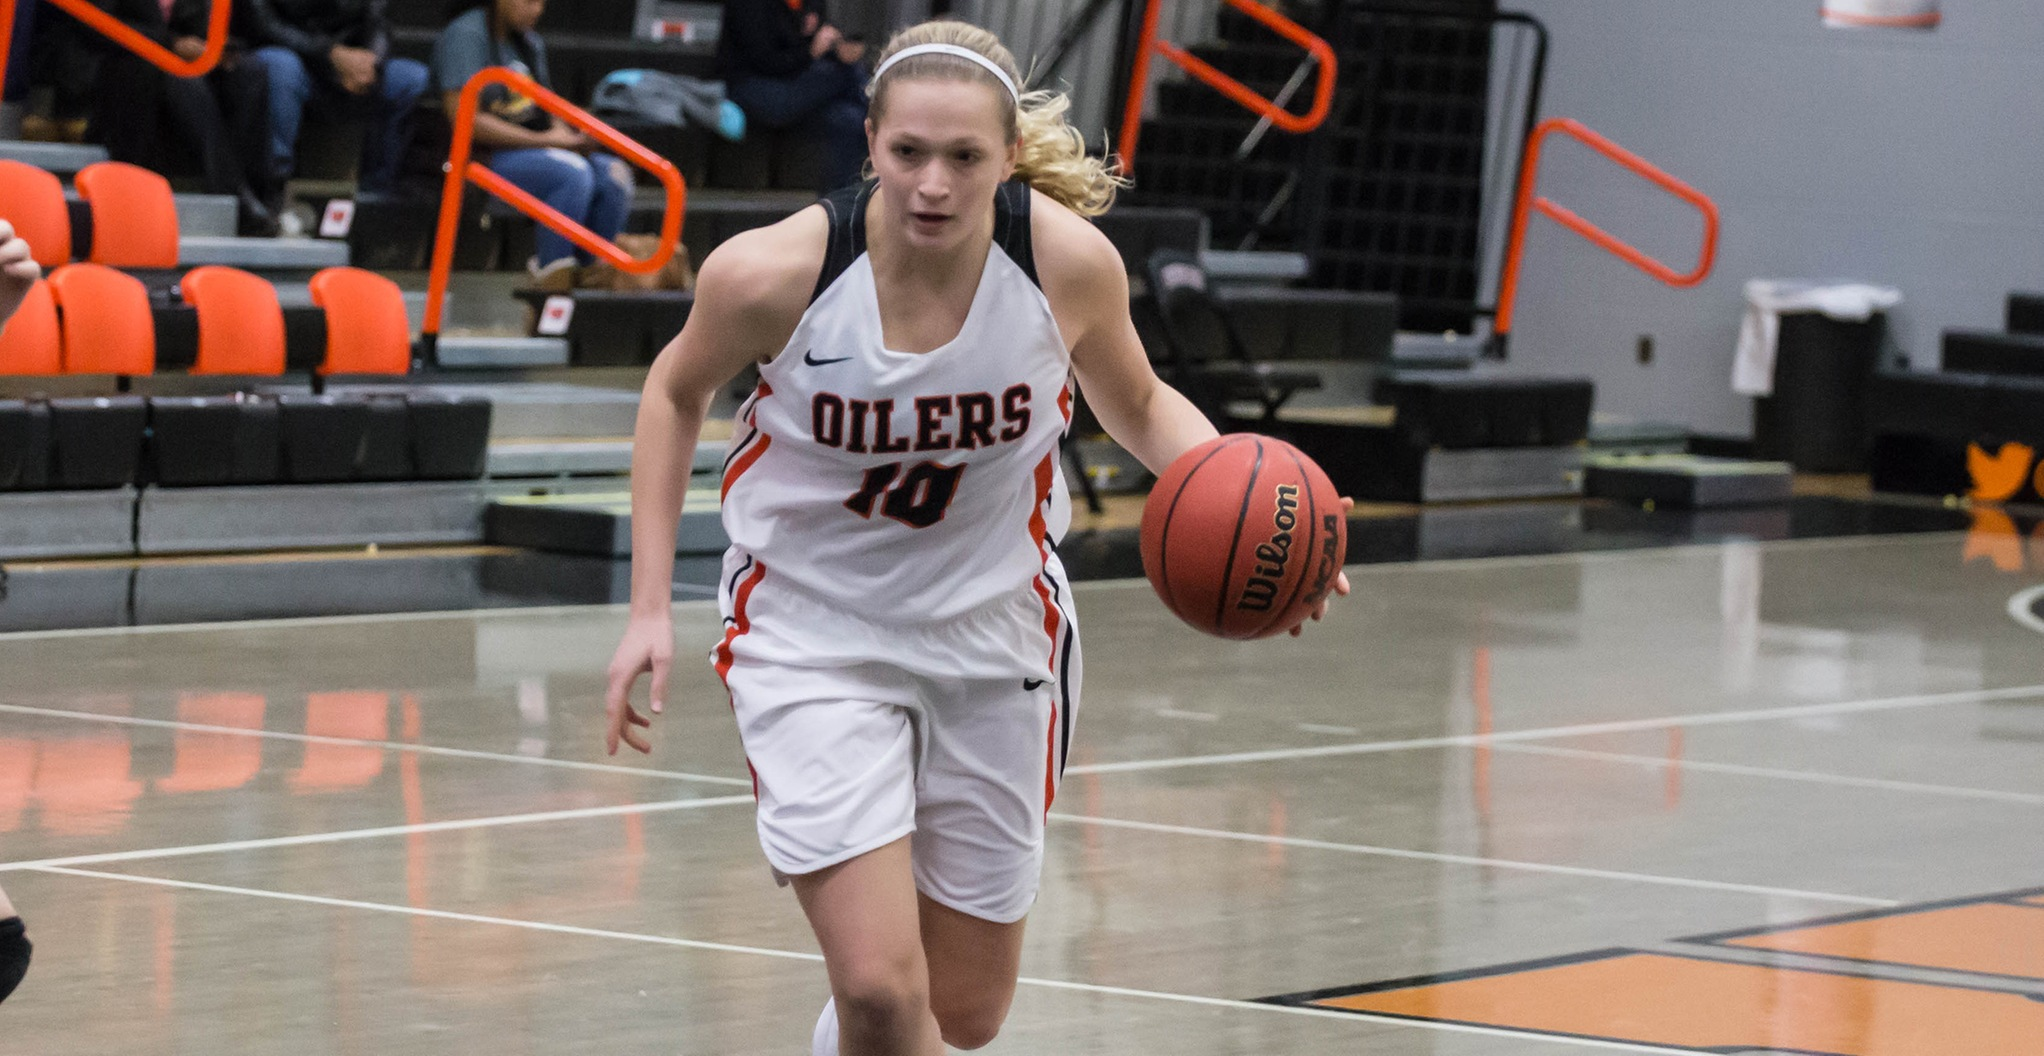 Oilers Fall in OT to DI Rockets